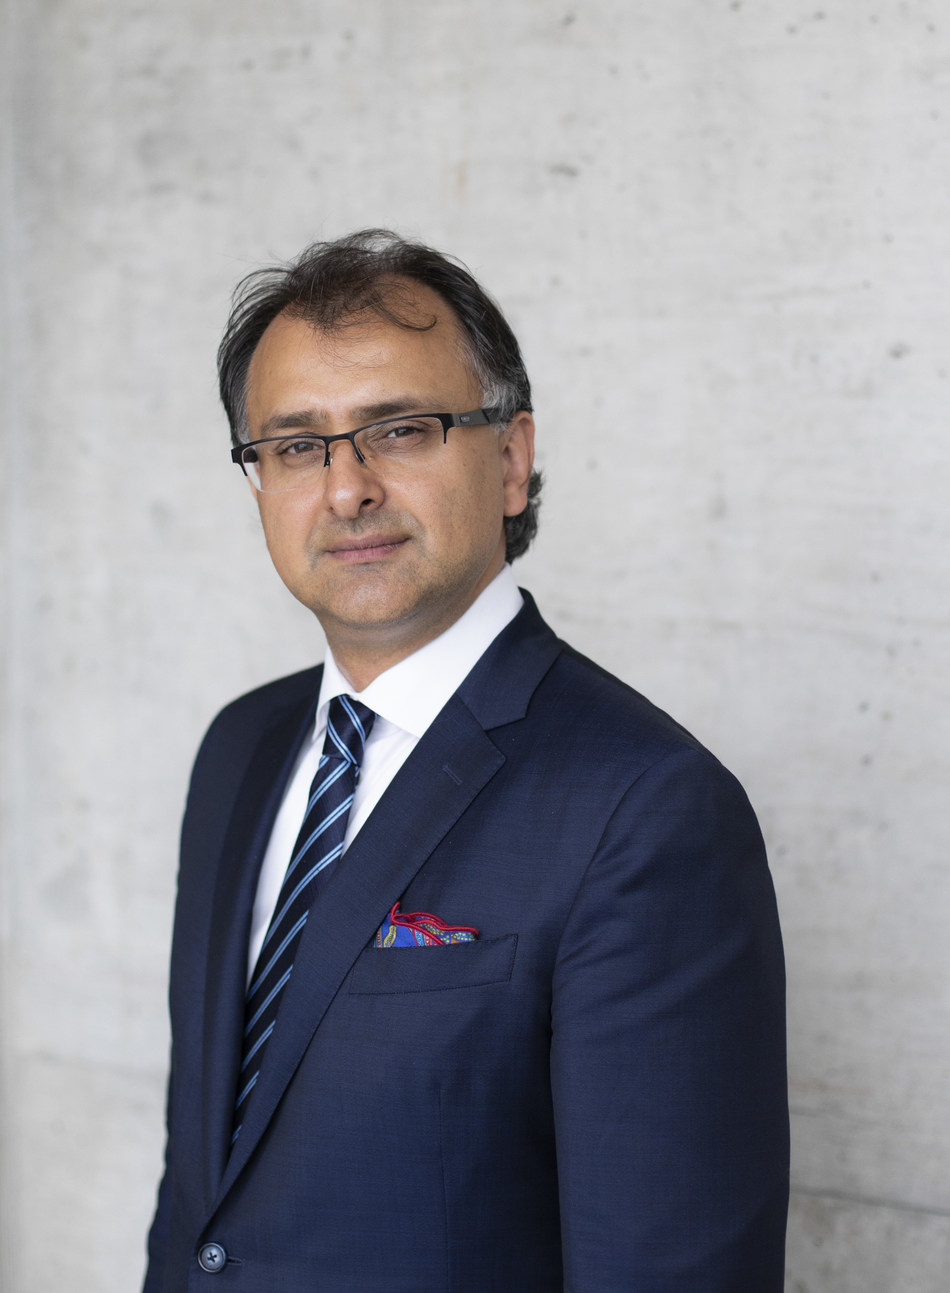 Univ of Toronto Professor and Innovator Ajay Agrawal Joins Genpact Board of Directors January 22, 2019